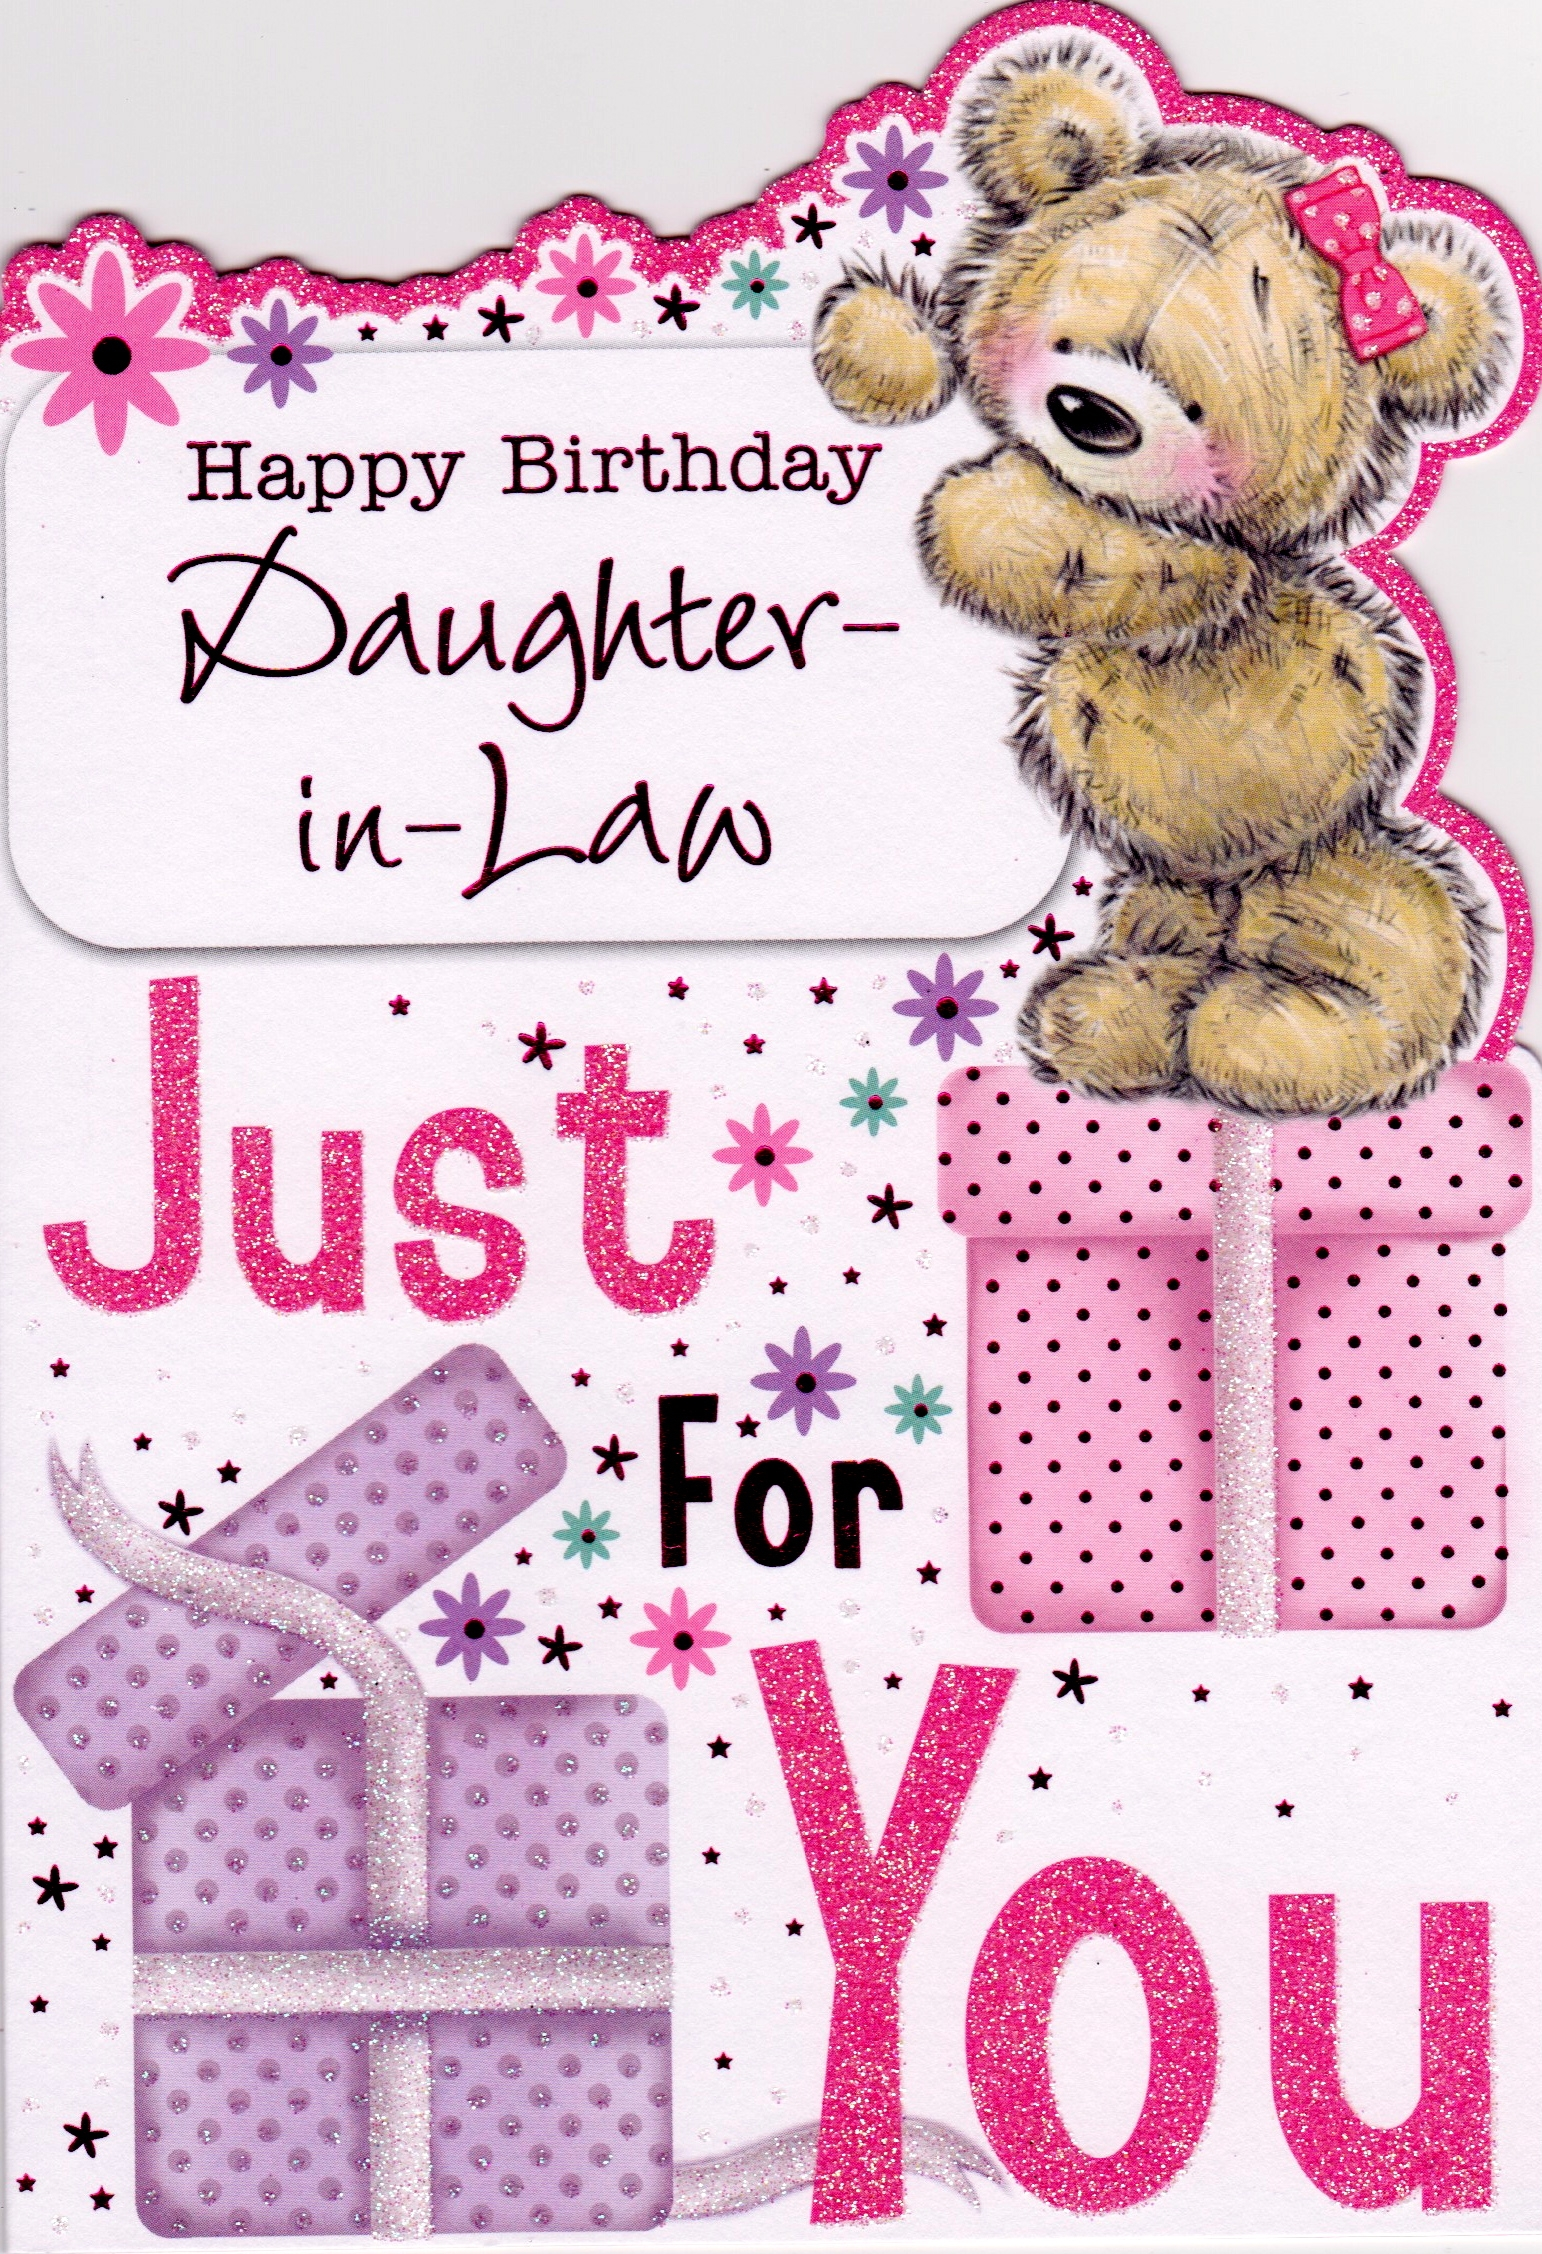 Free My Daughter Cliparts, Download Free Clip Art, Free Clip Art on.